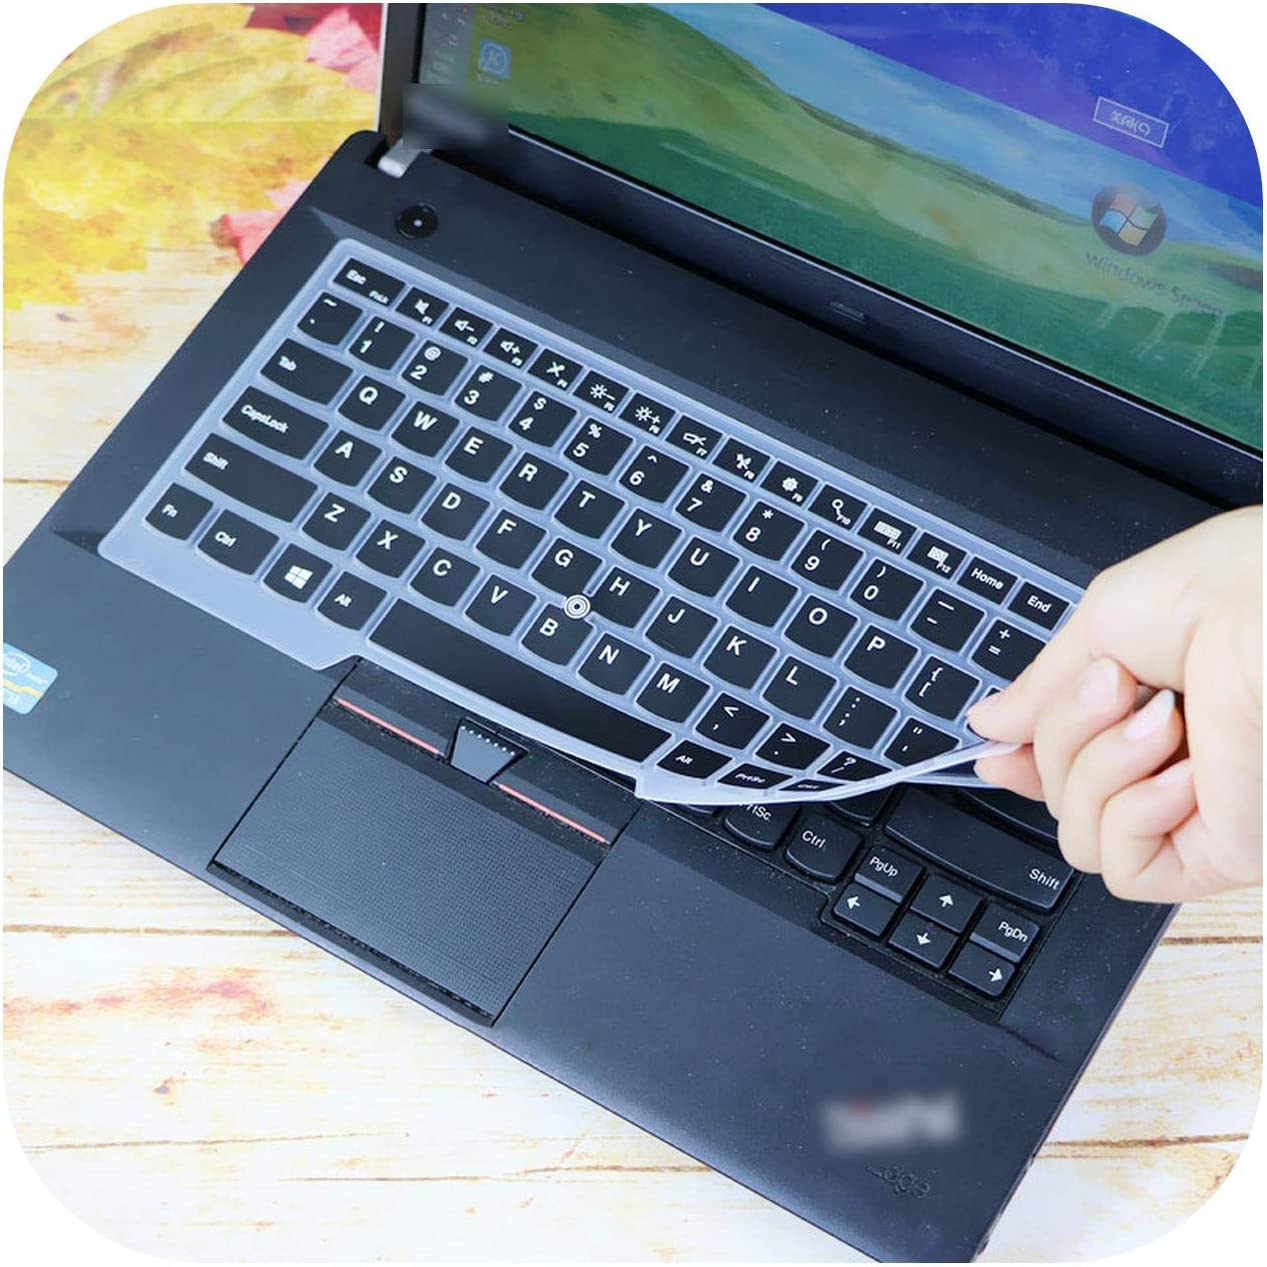 Candyblack 14 Inch Laptop Keyboard Cover Protector for Lenovo Thinkpad E480 E485 E475 E490 L380 L390 L440 L450 L460 L470 L480 L490 A475